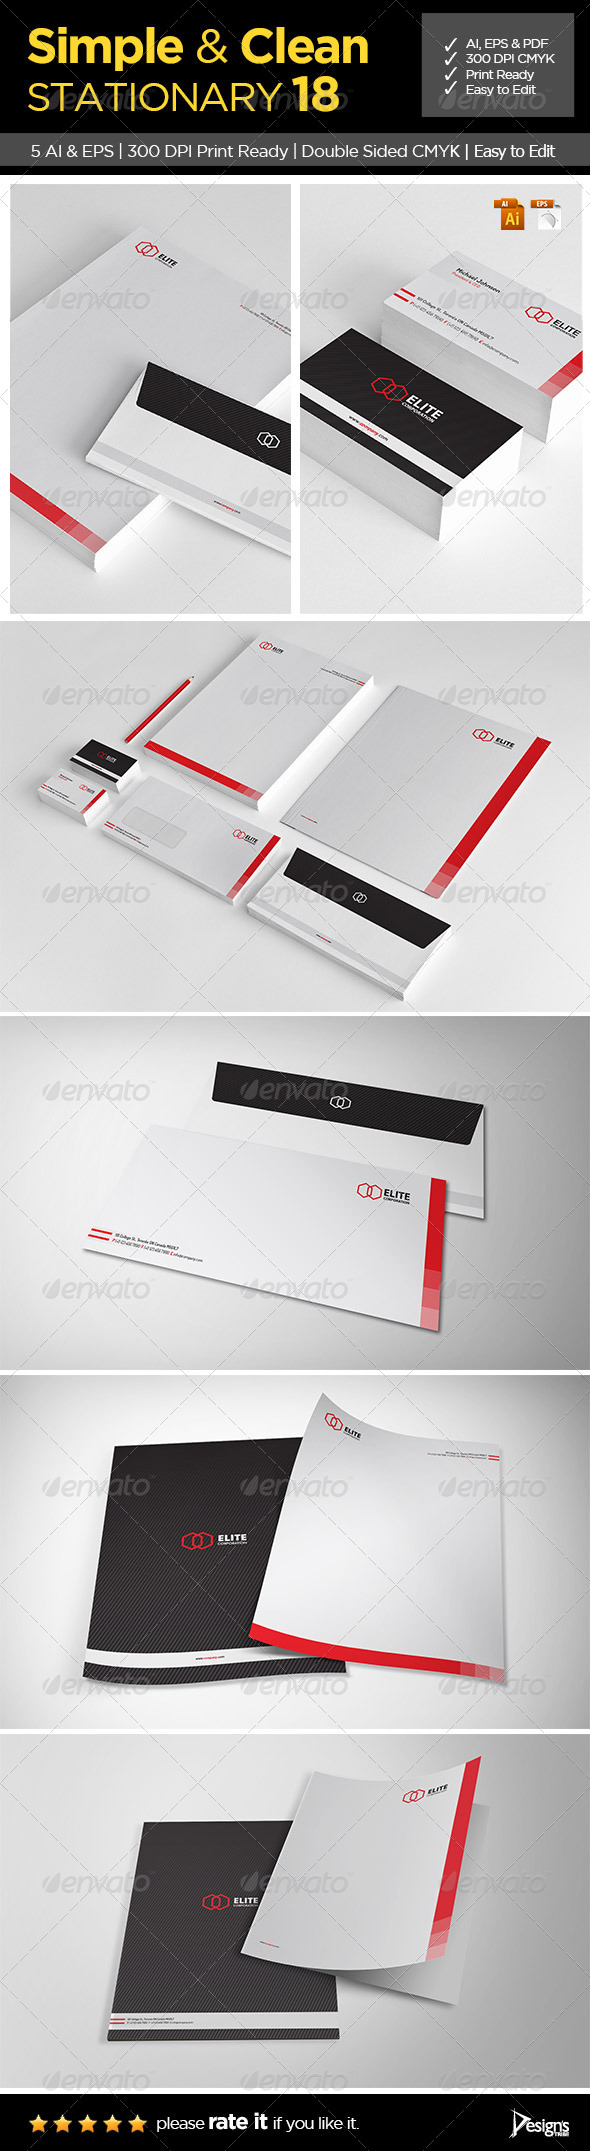 GraphicRiver Simple and Clean Stationary 18 6507676